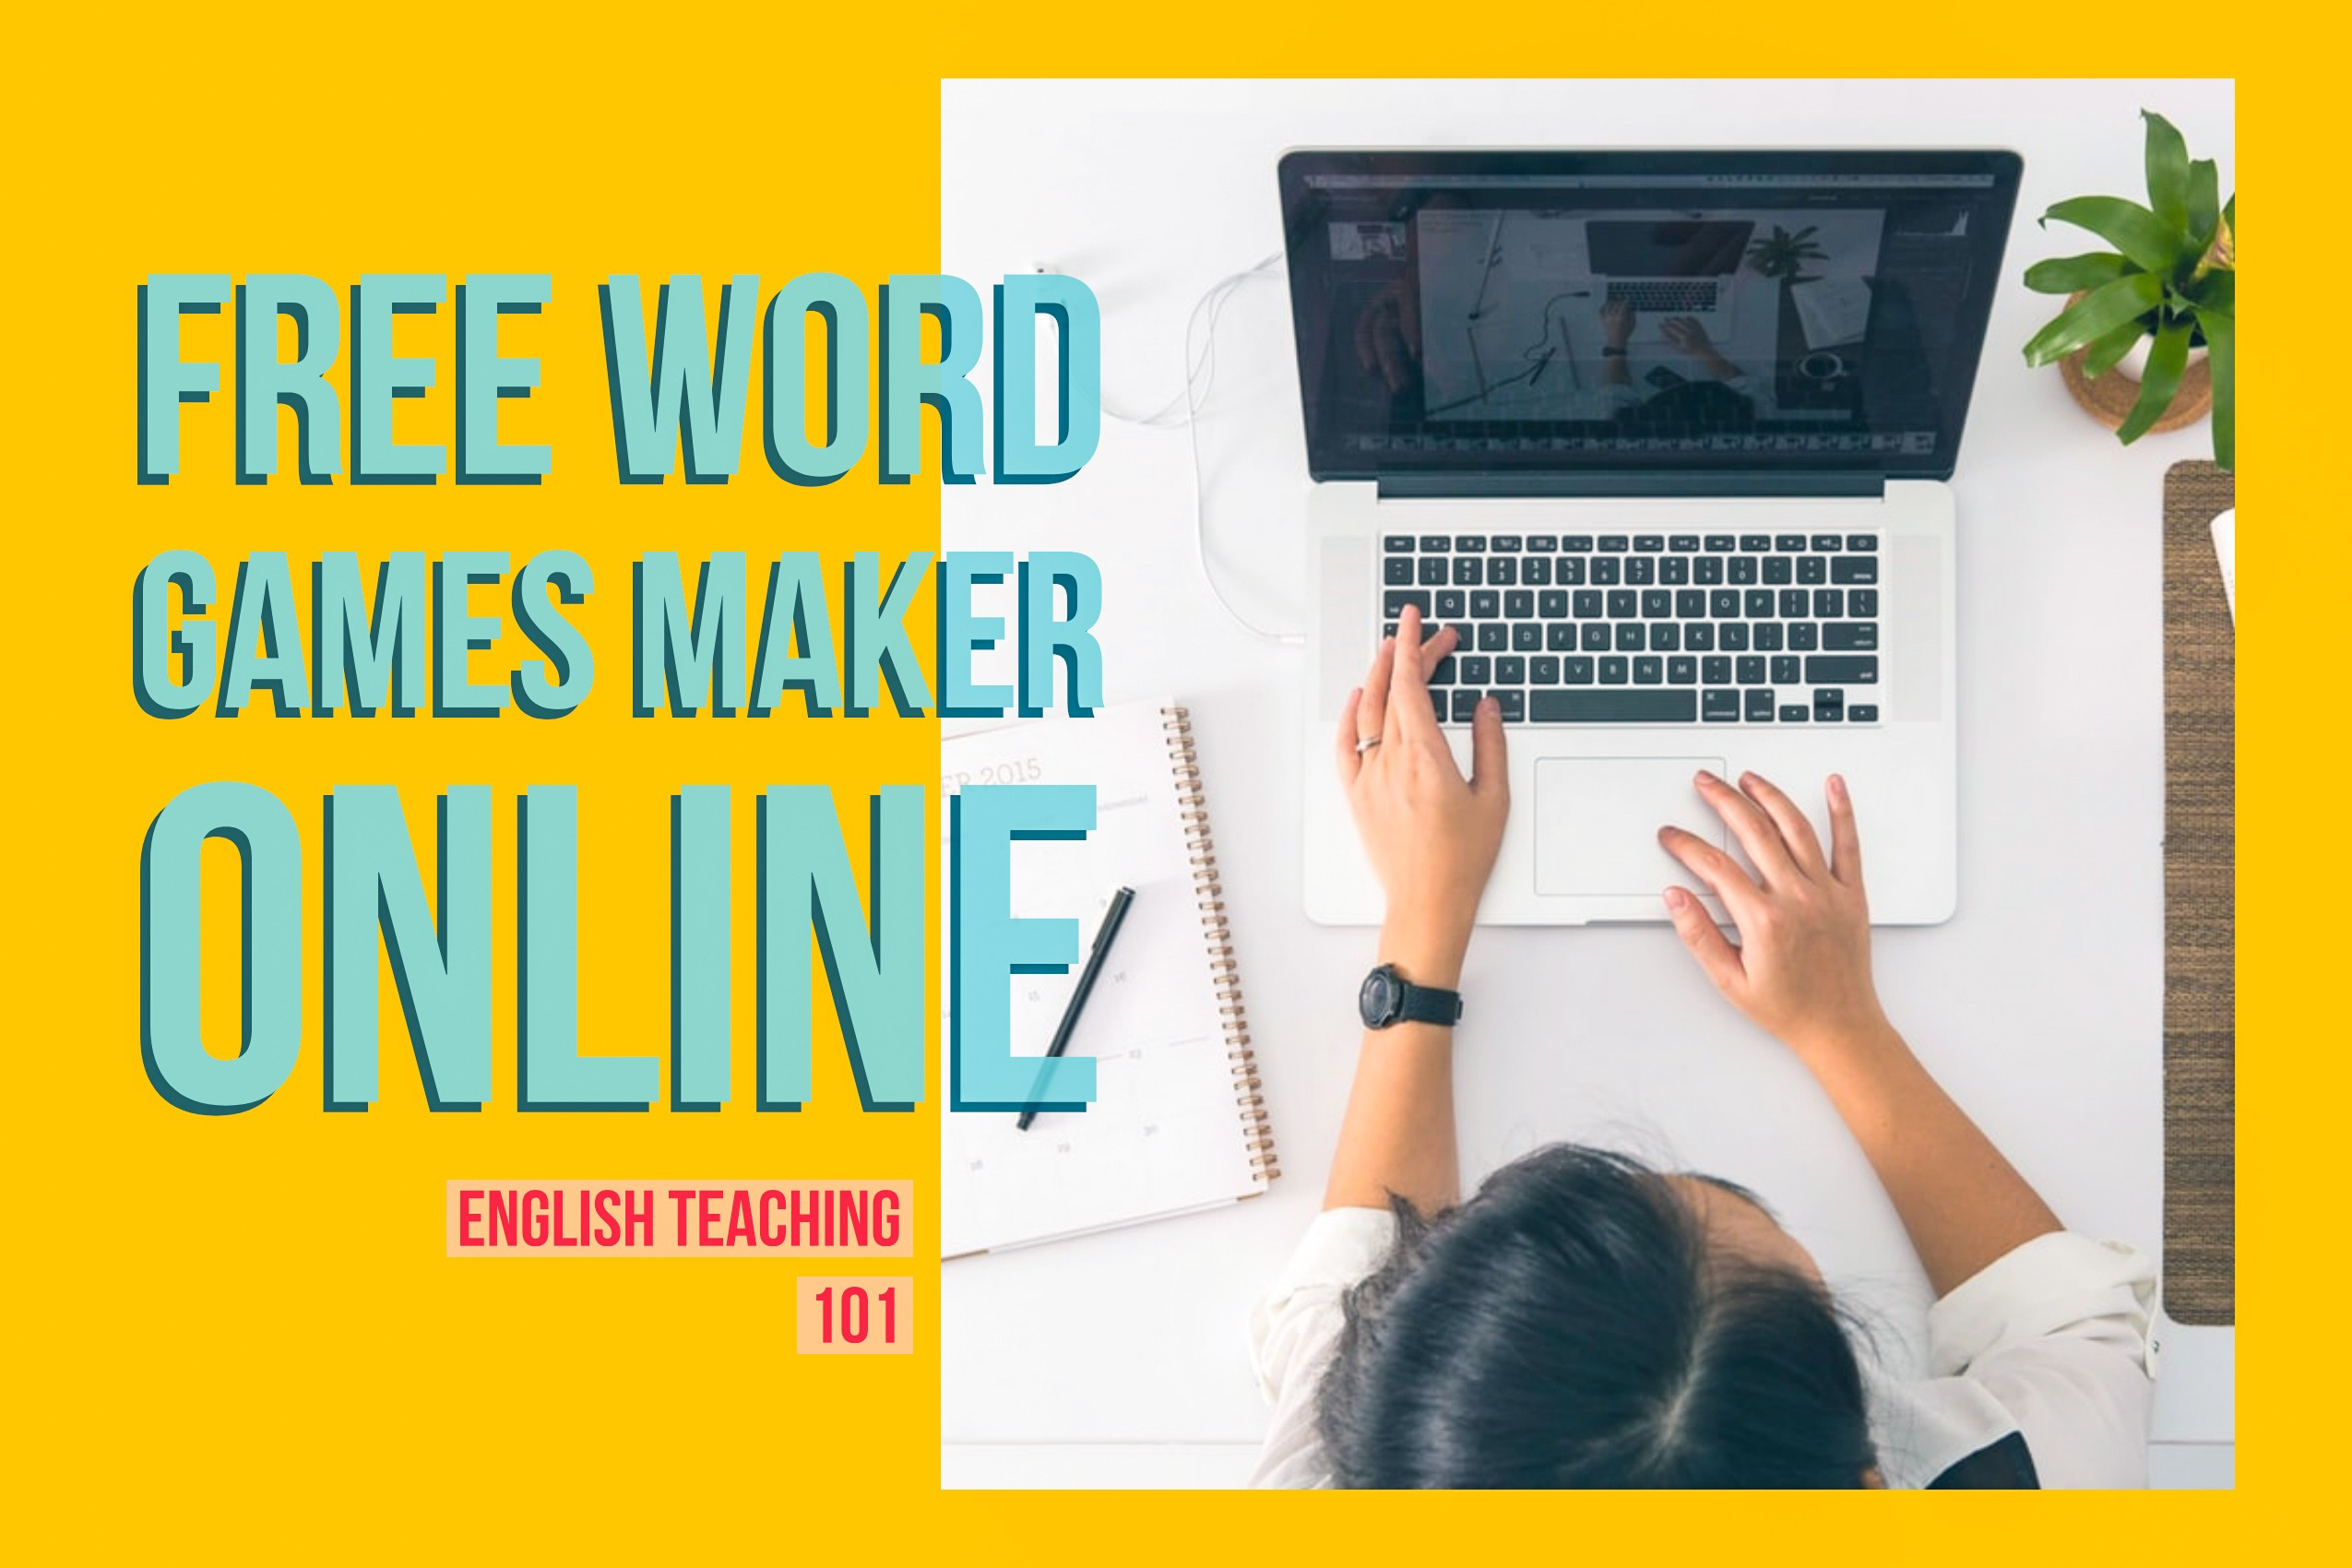 Free word games maker online